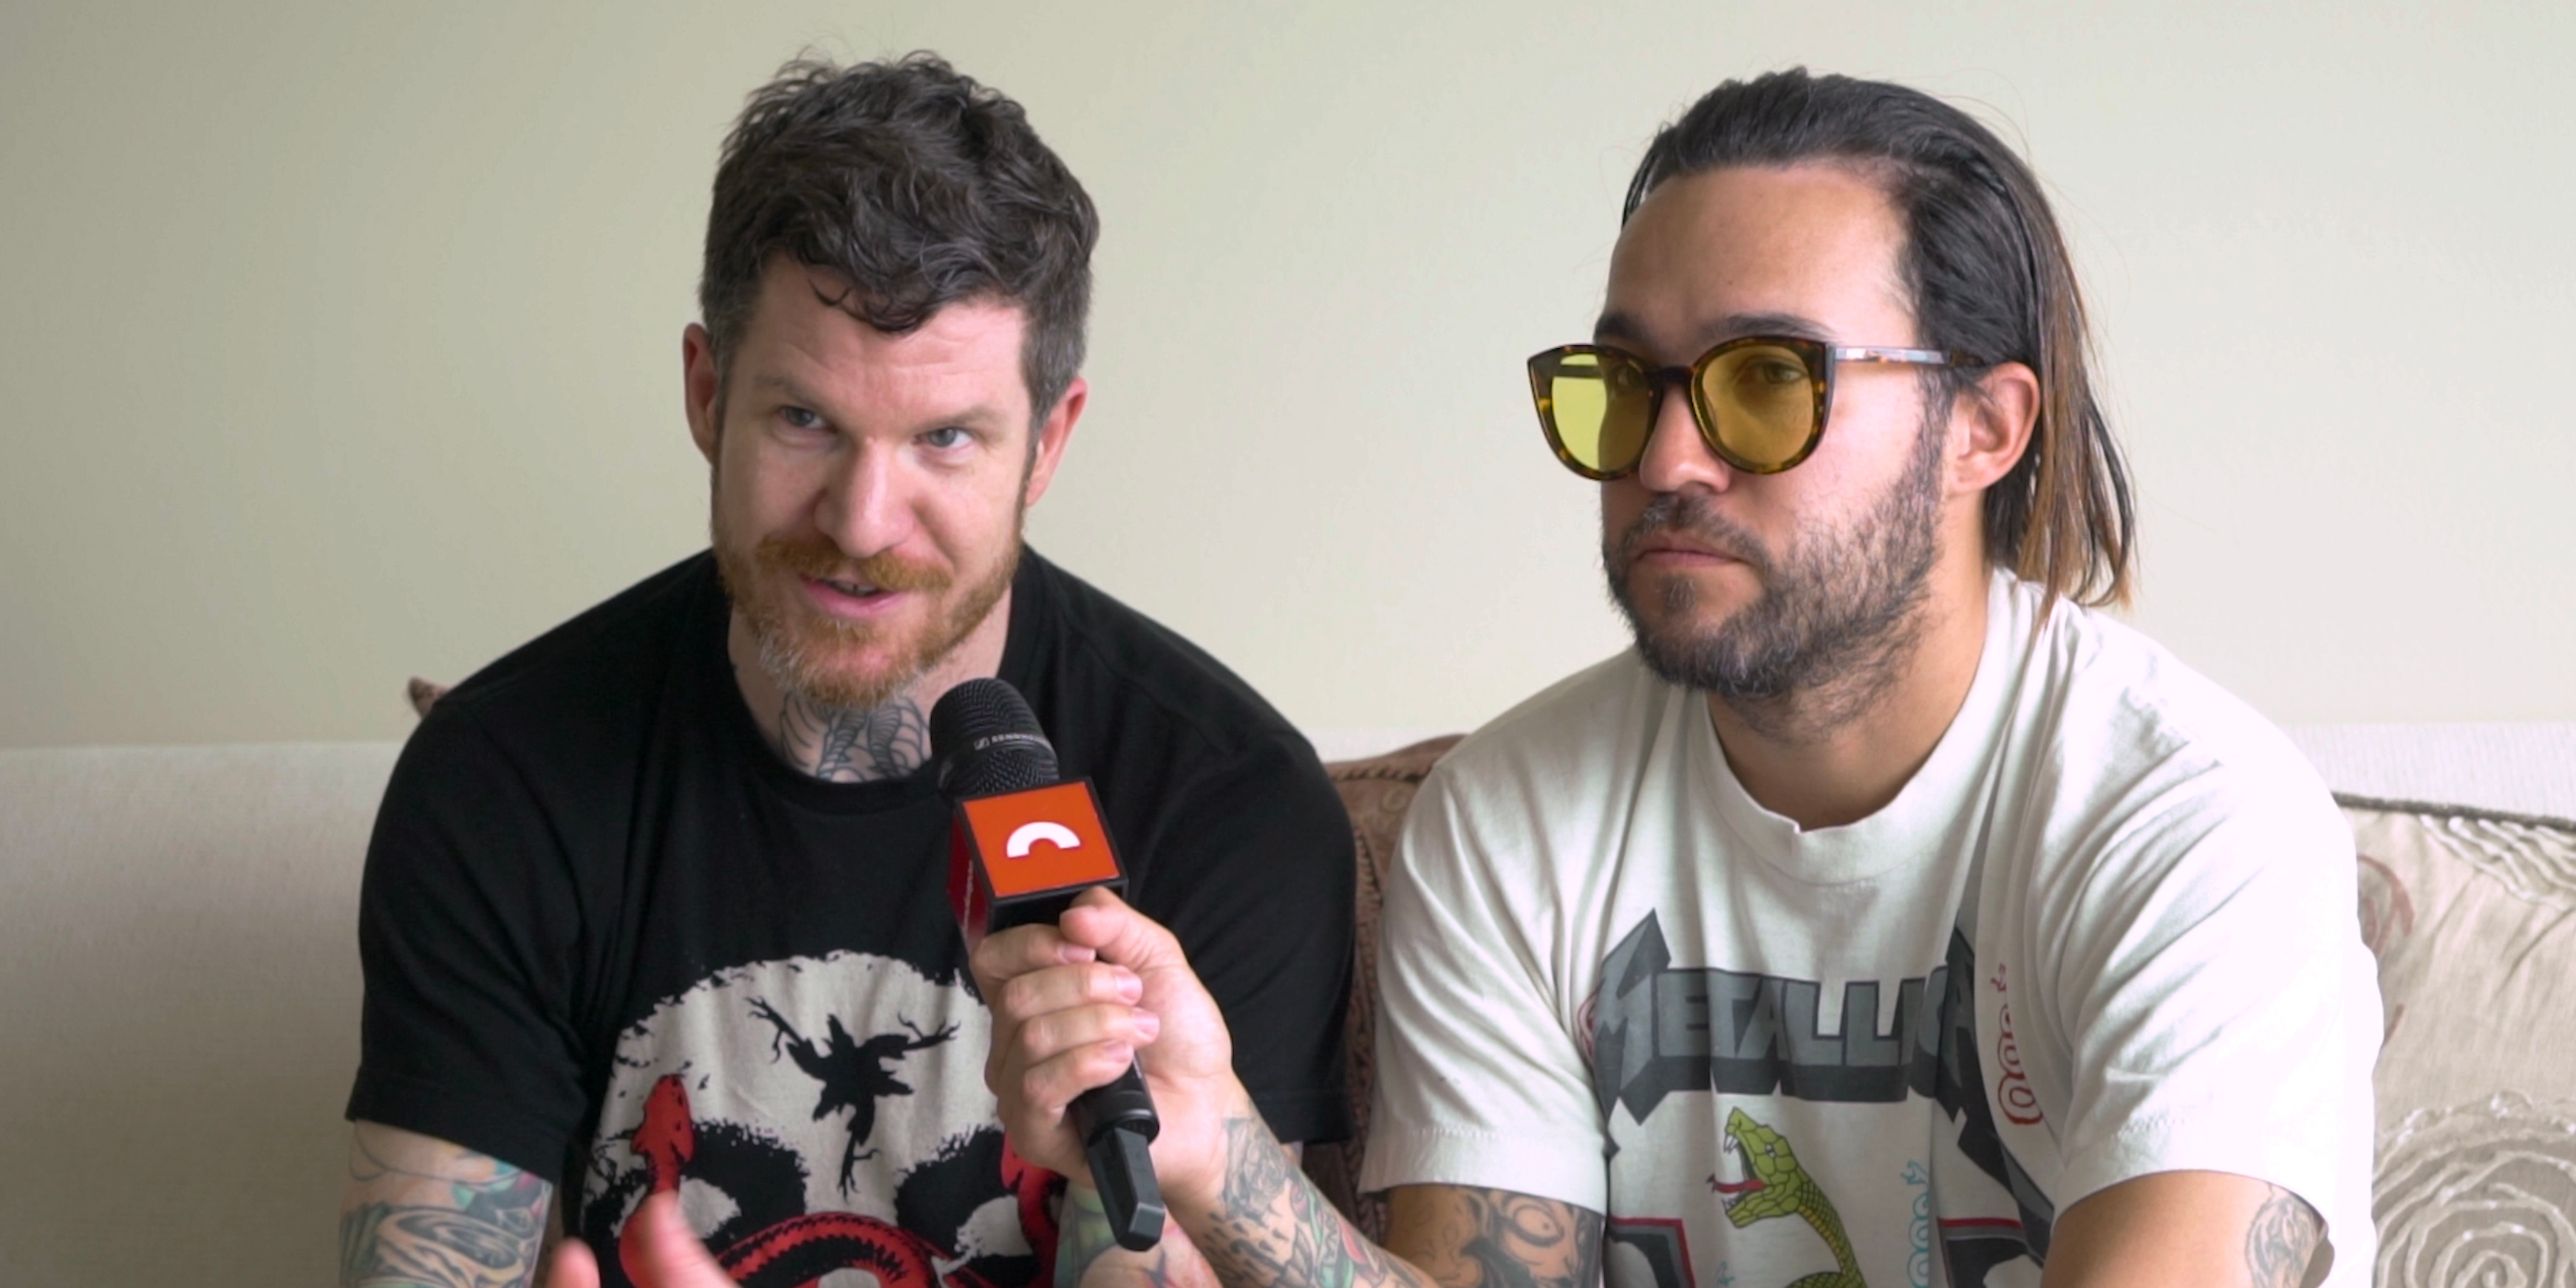 Pete Wentz and Andy Hurley talk the making of the latest Fall Out Boy album MANIA – watch